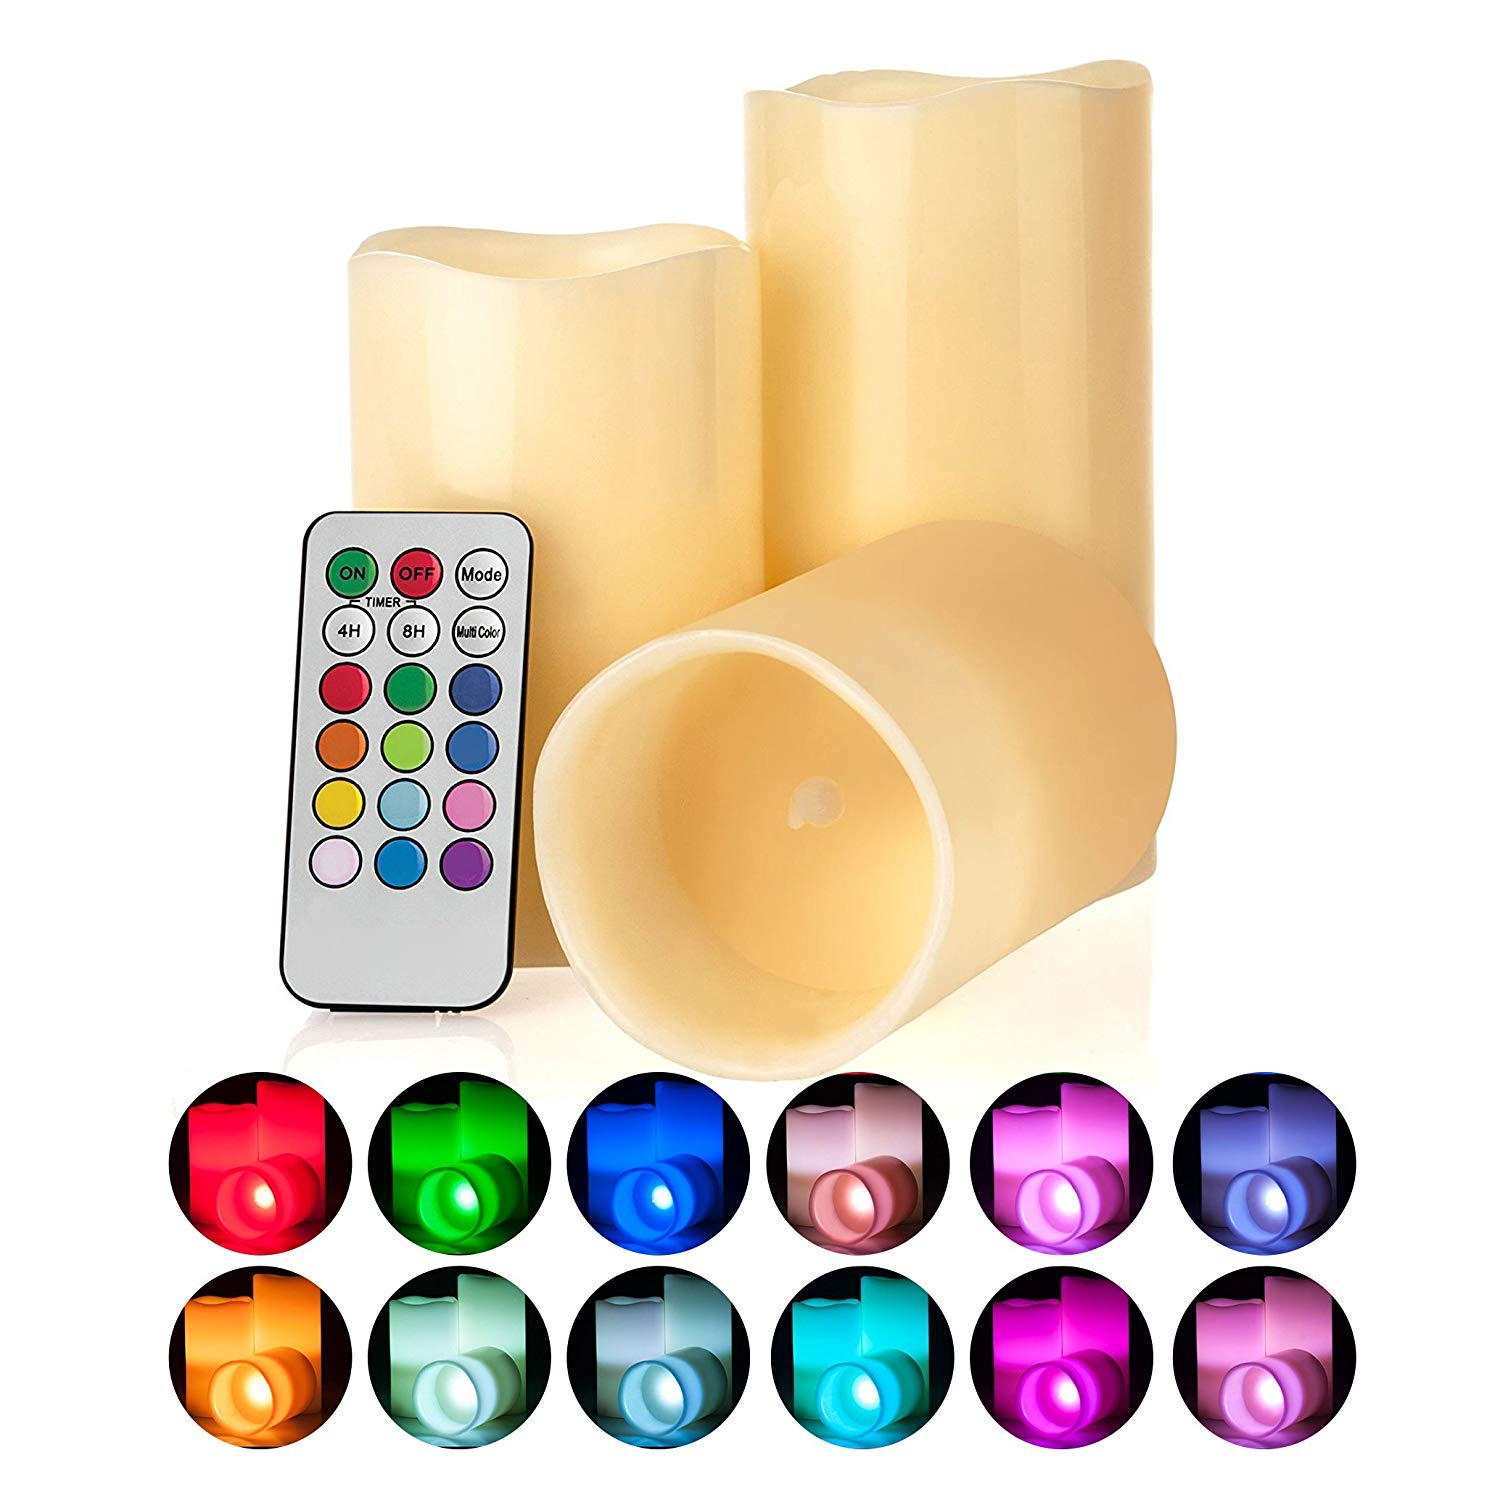 "Memoryee Multi-Color Flameless LED Candles Battery Operated Wax Candles, 3"" wide and 4"" 5"" 6"" tall, Remote and auto-off Timer- Set of 3pcs"